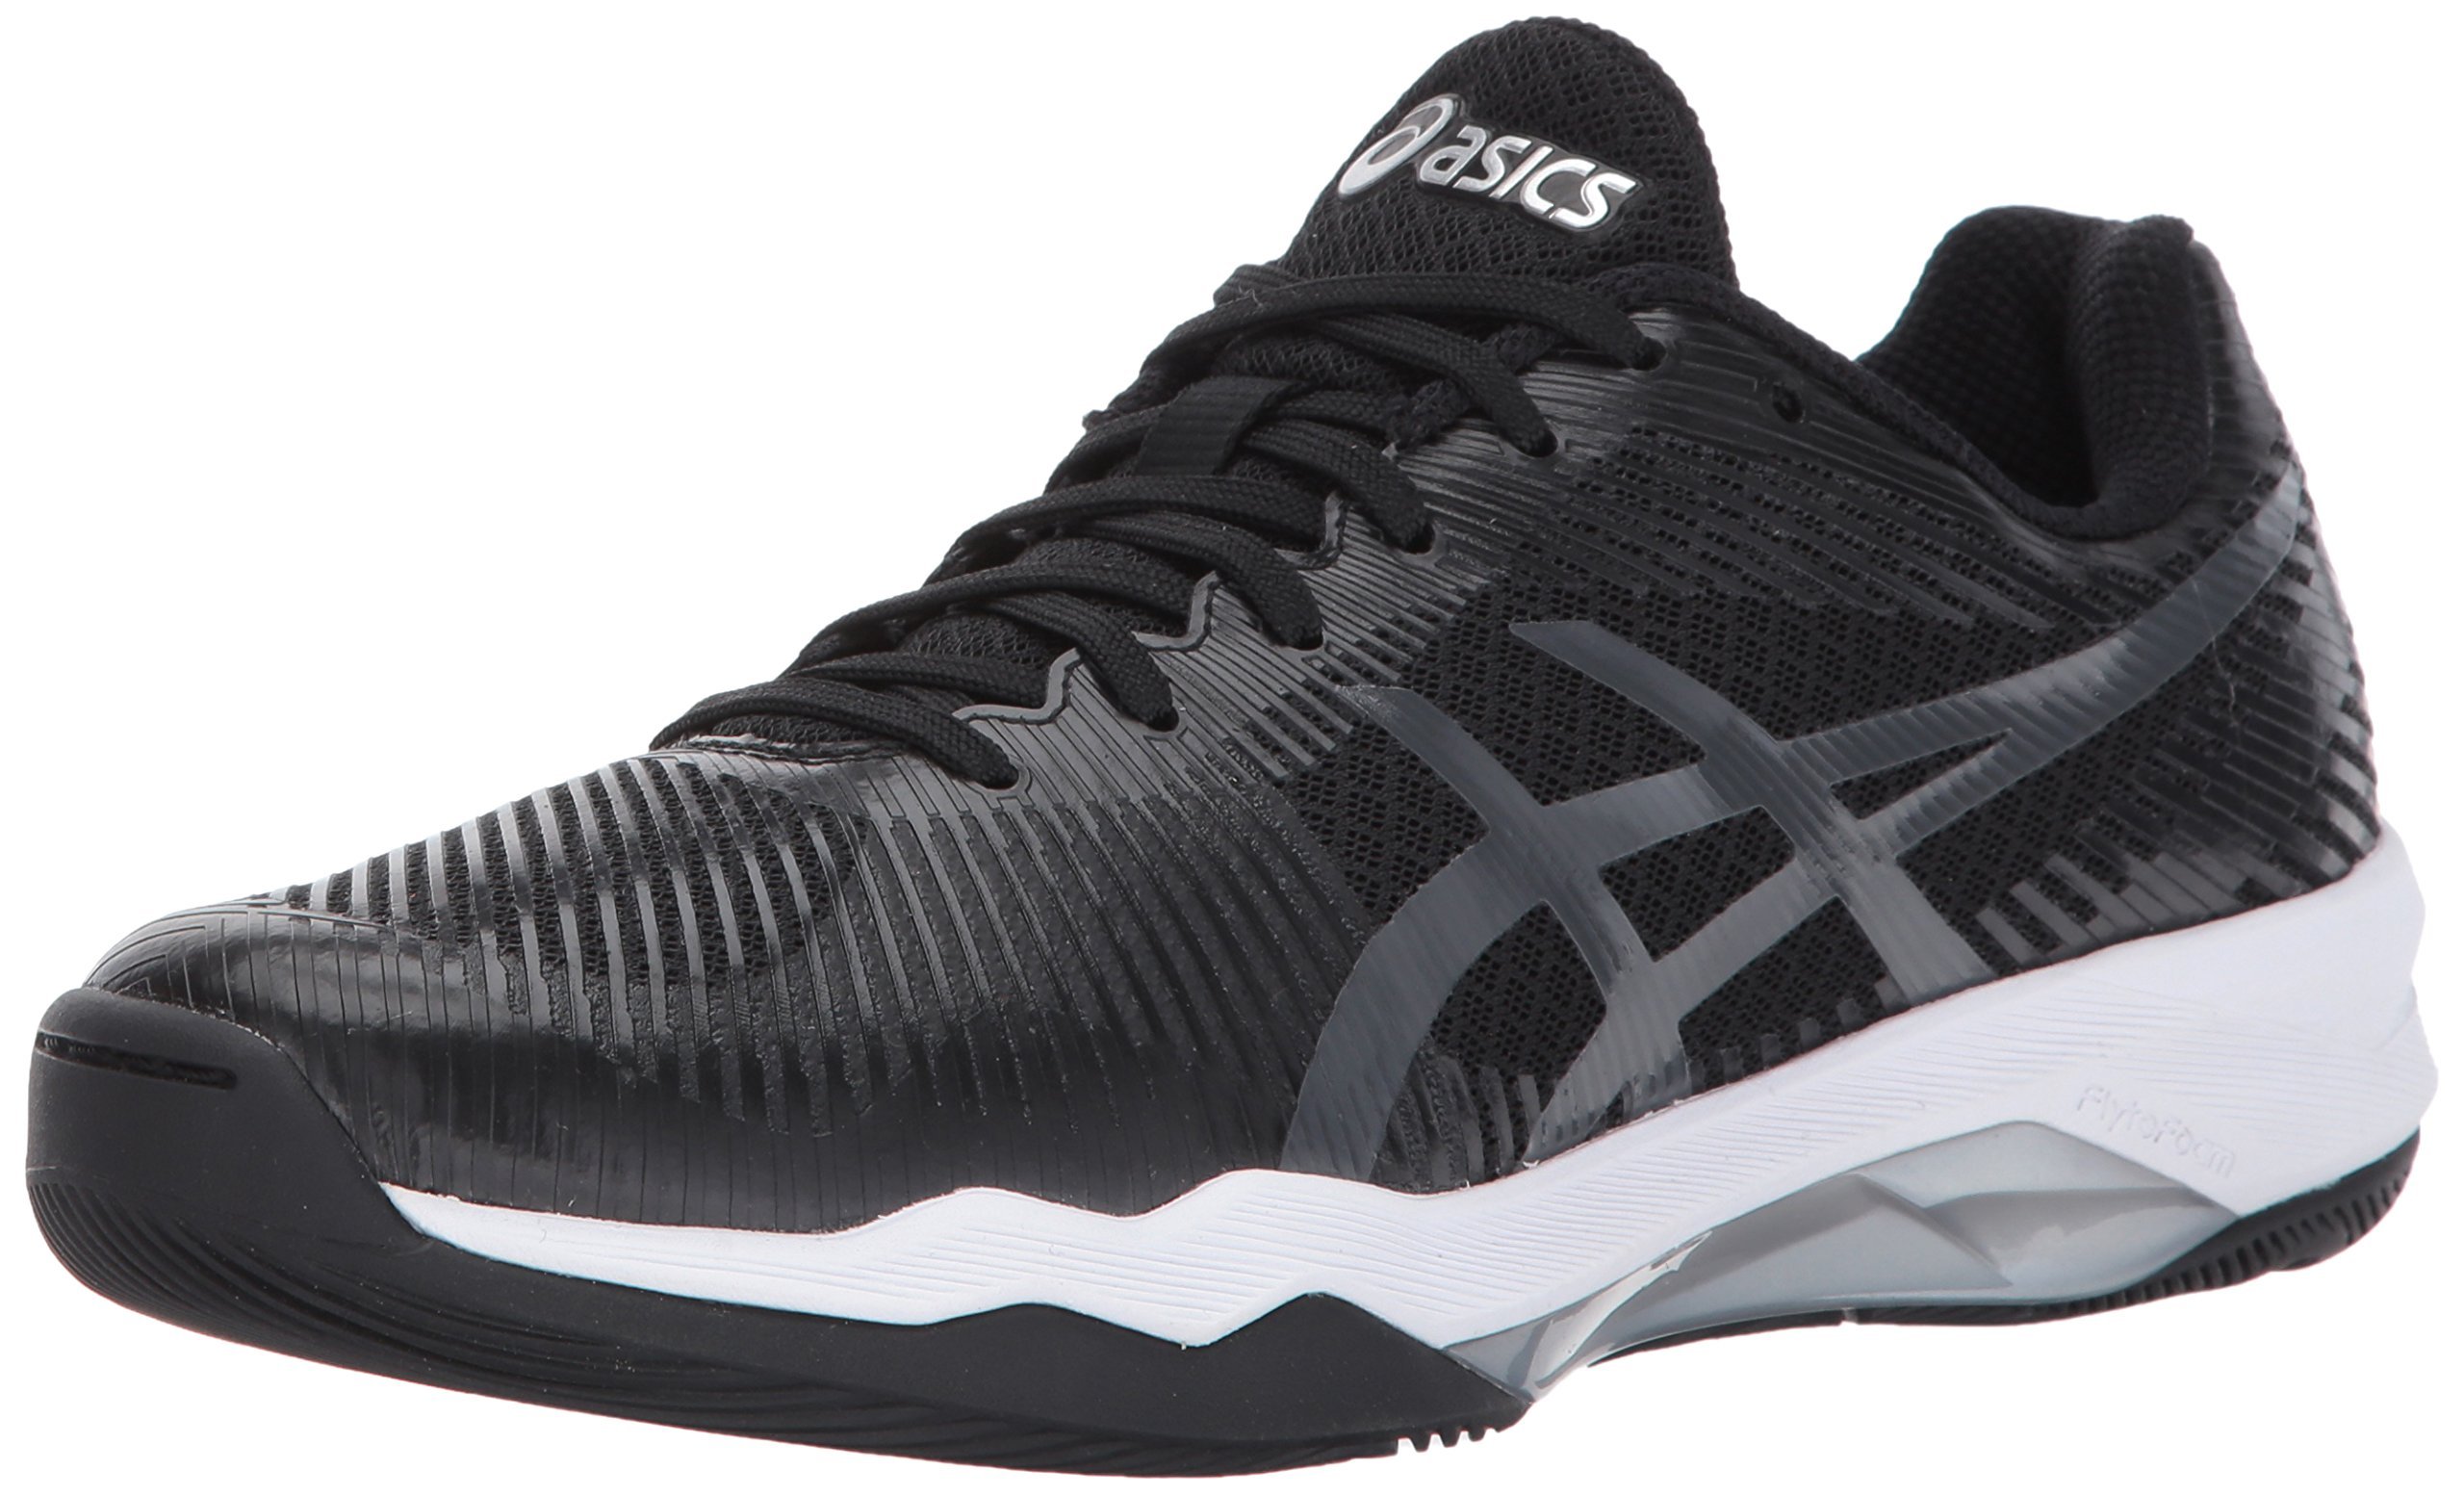 ASICS Women's Volley Elite FF Volleyball-Shoes, Black/Dark Grey/White, 6.5 Medium US